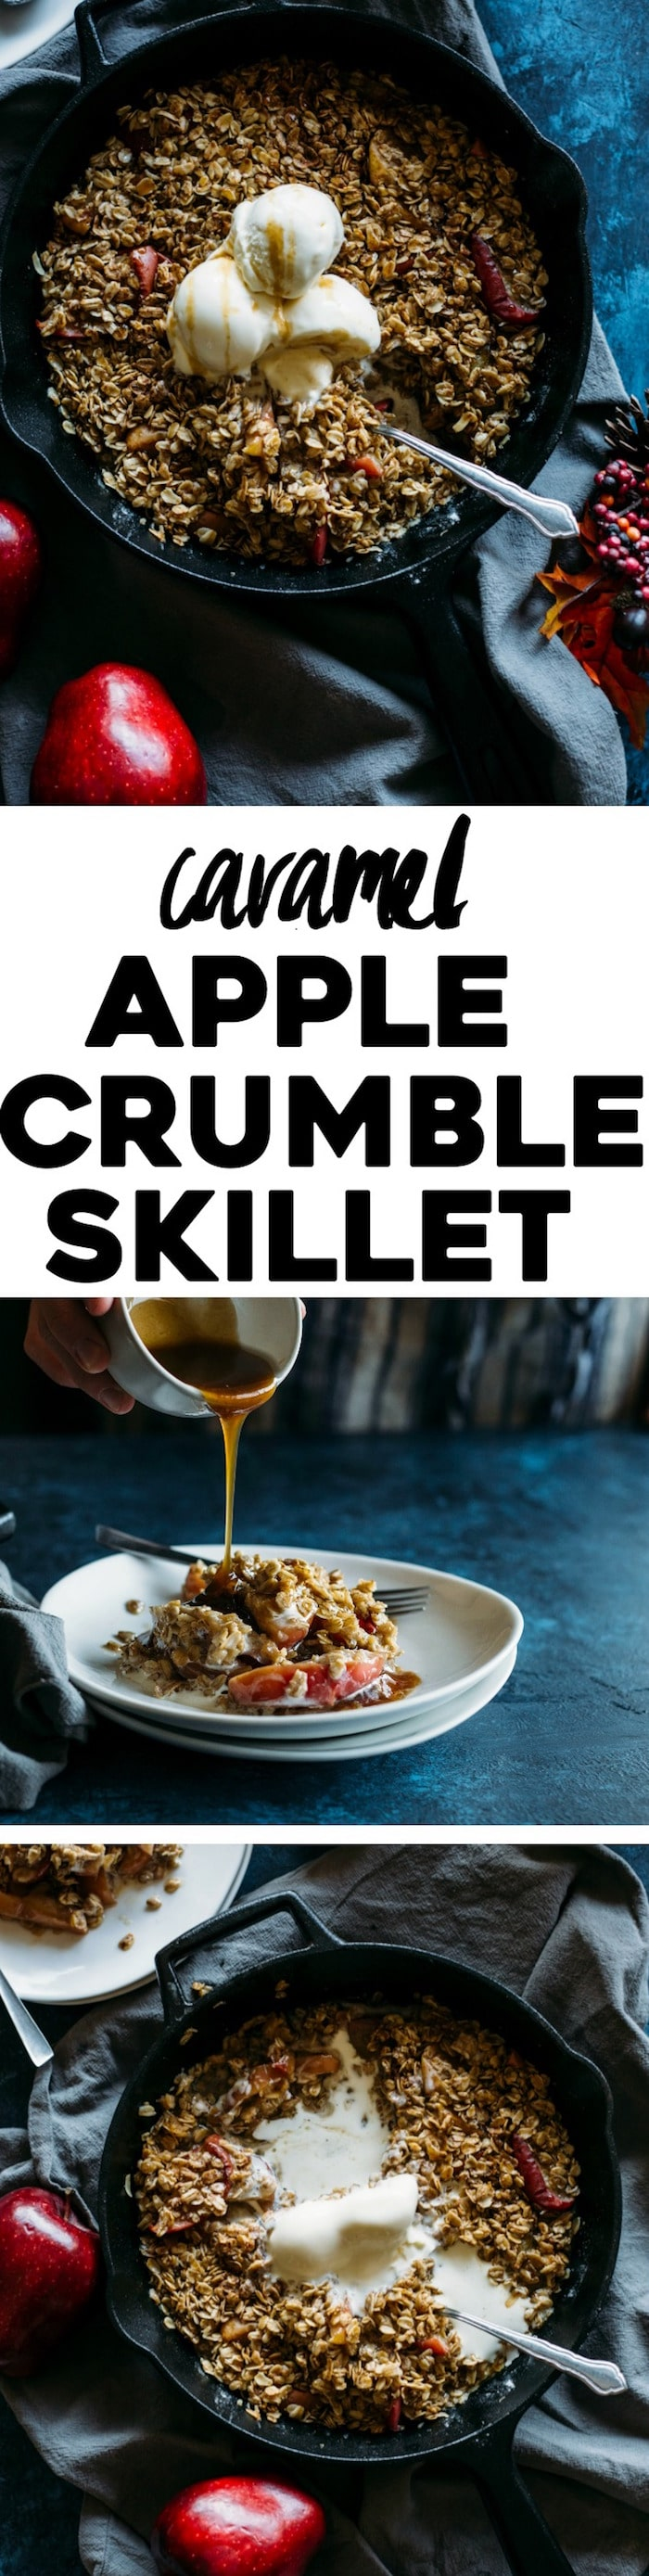 Caramel Apple Crumble Skillet | Apples, oats, cinnamon, and homemade caramel packed into this AMAZING one skillet dessert! | thealmondeater.com